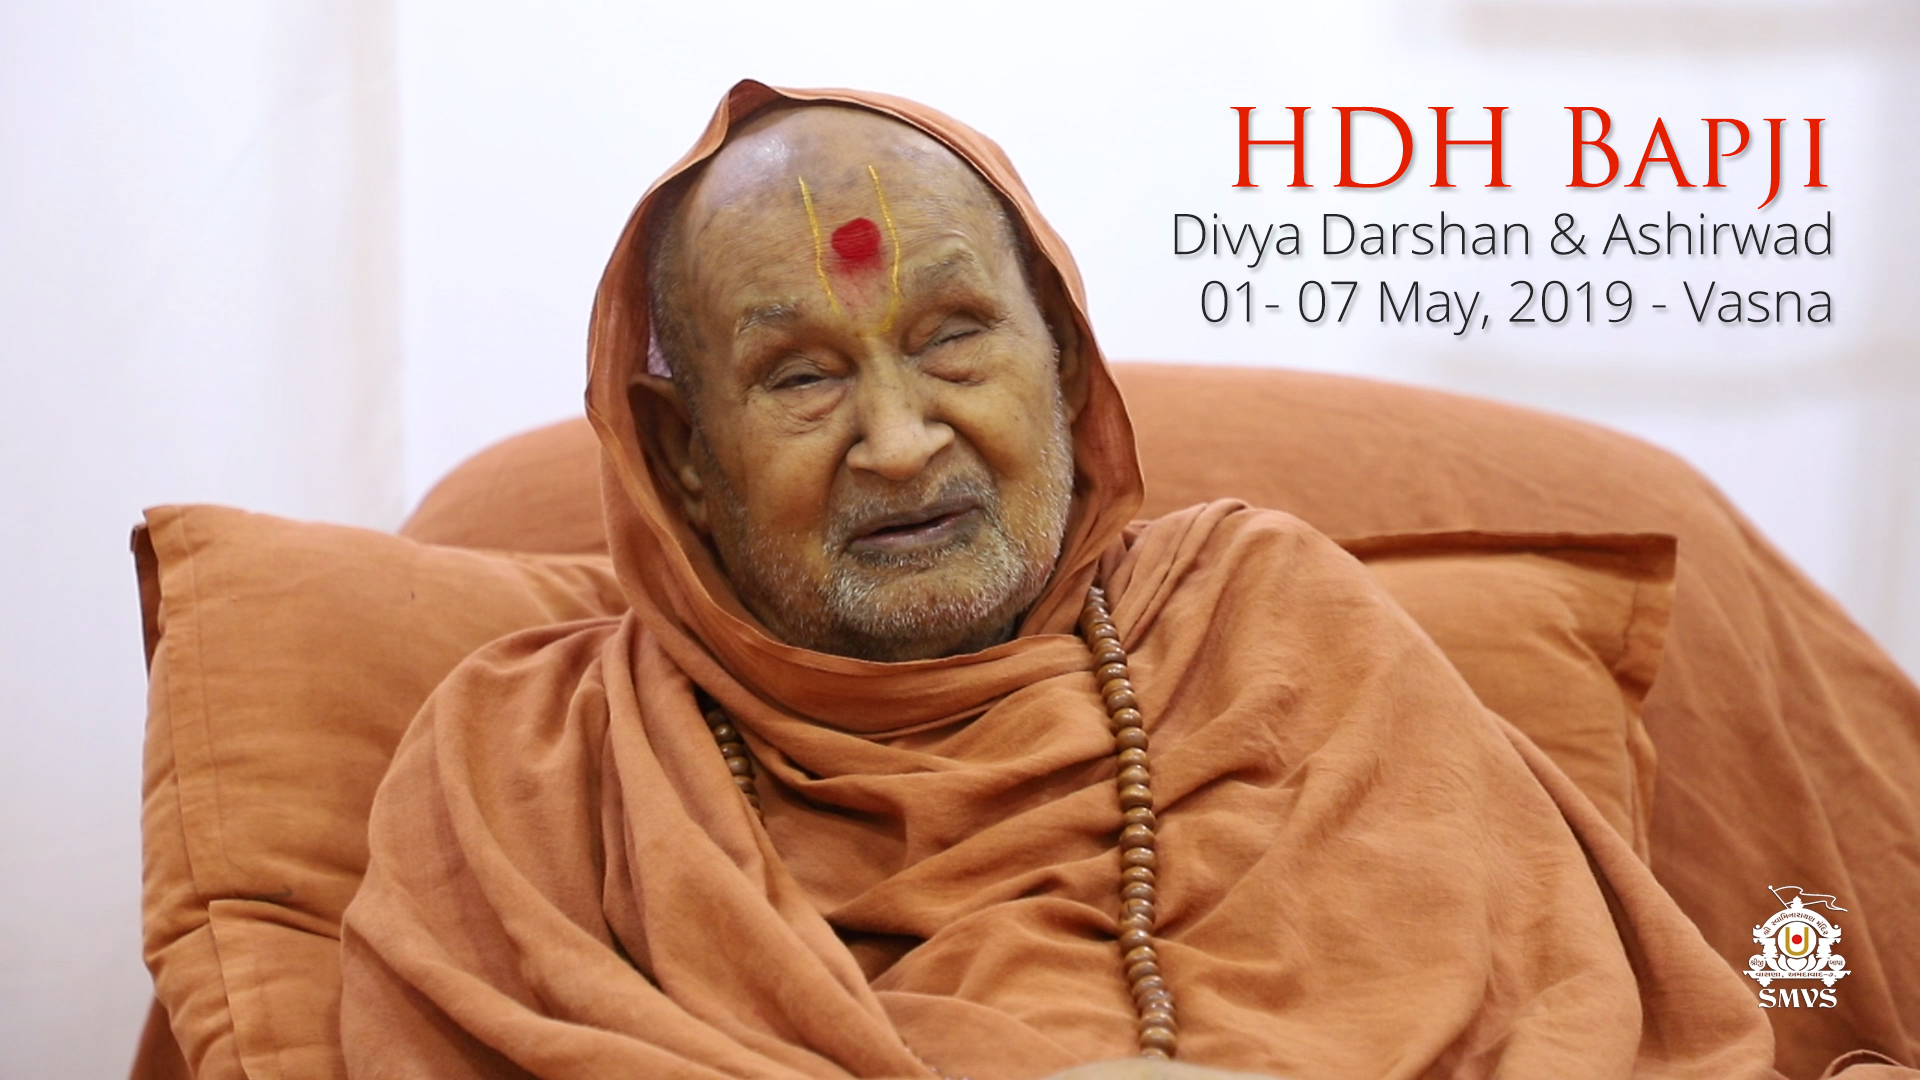 HDH Bapji Divya Darshan-Ashirwad | 01 to 07 May, 2019